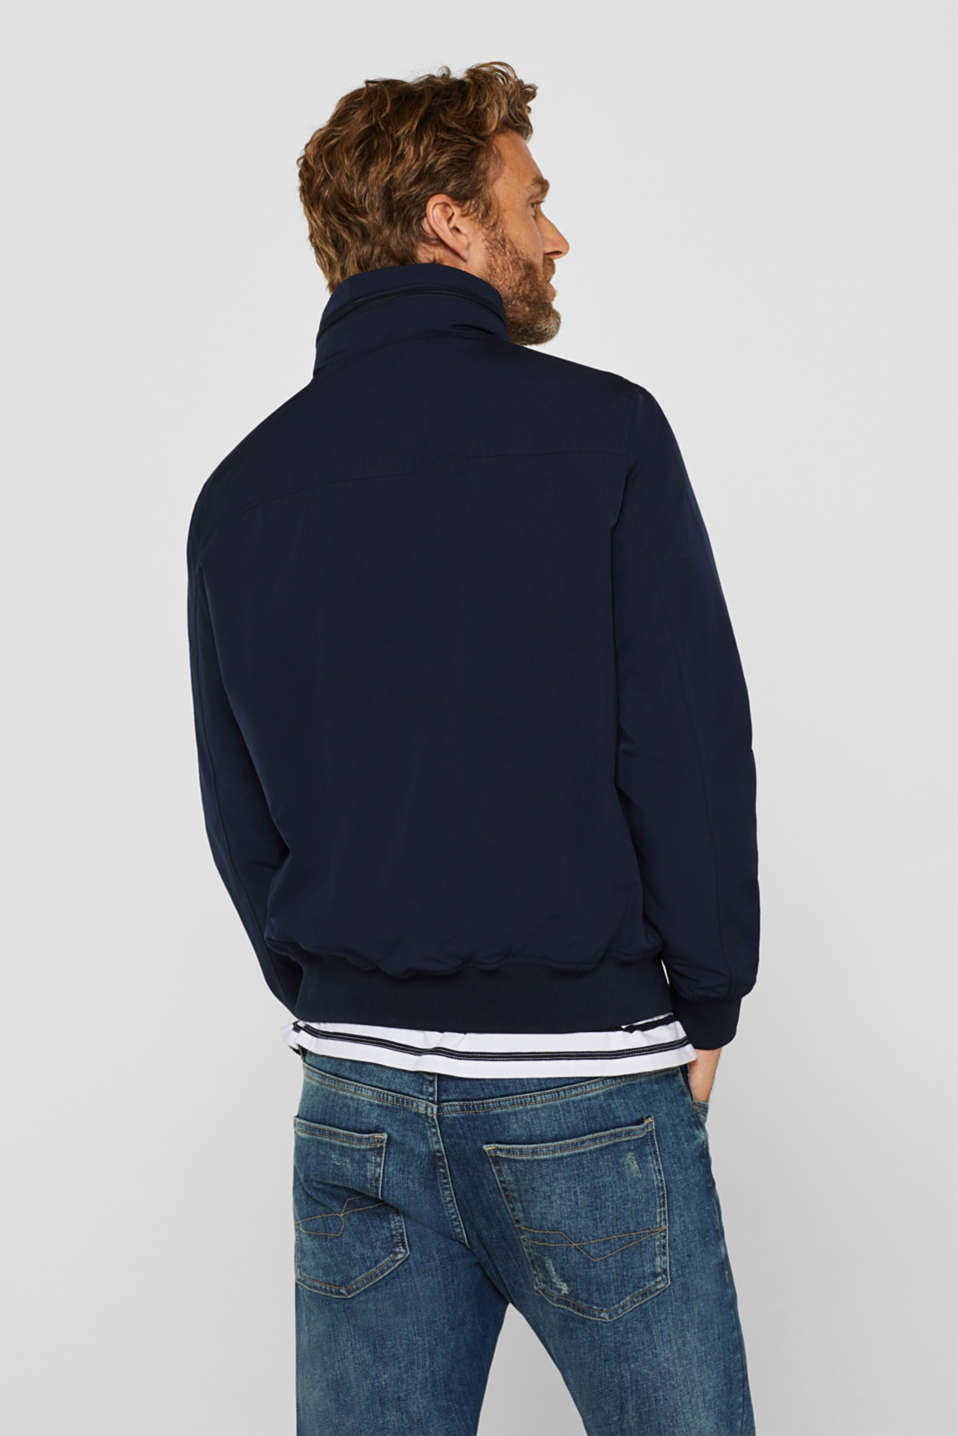 Bomber jacket with an adjustable hood, NAVY, detail image number 3